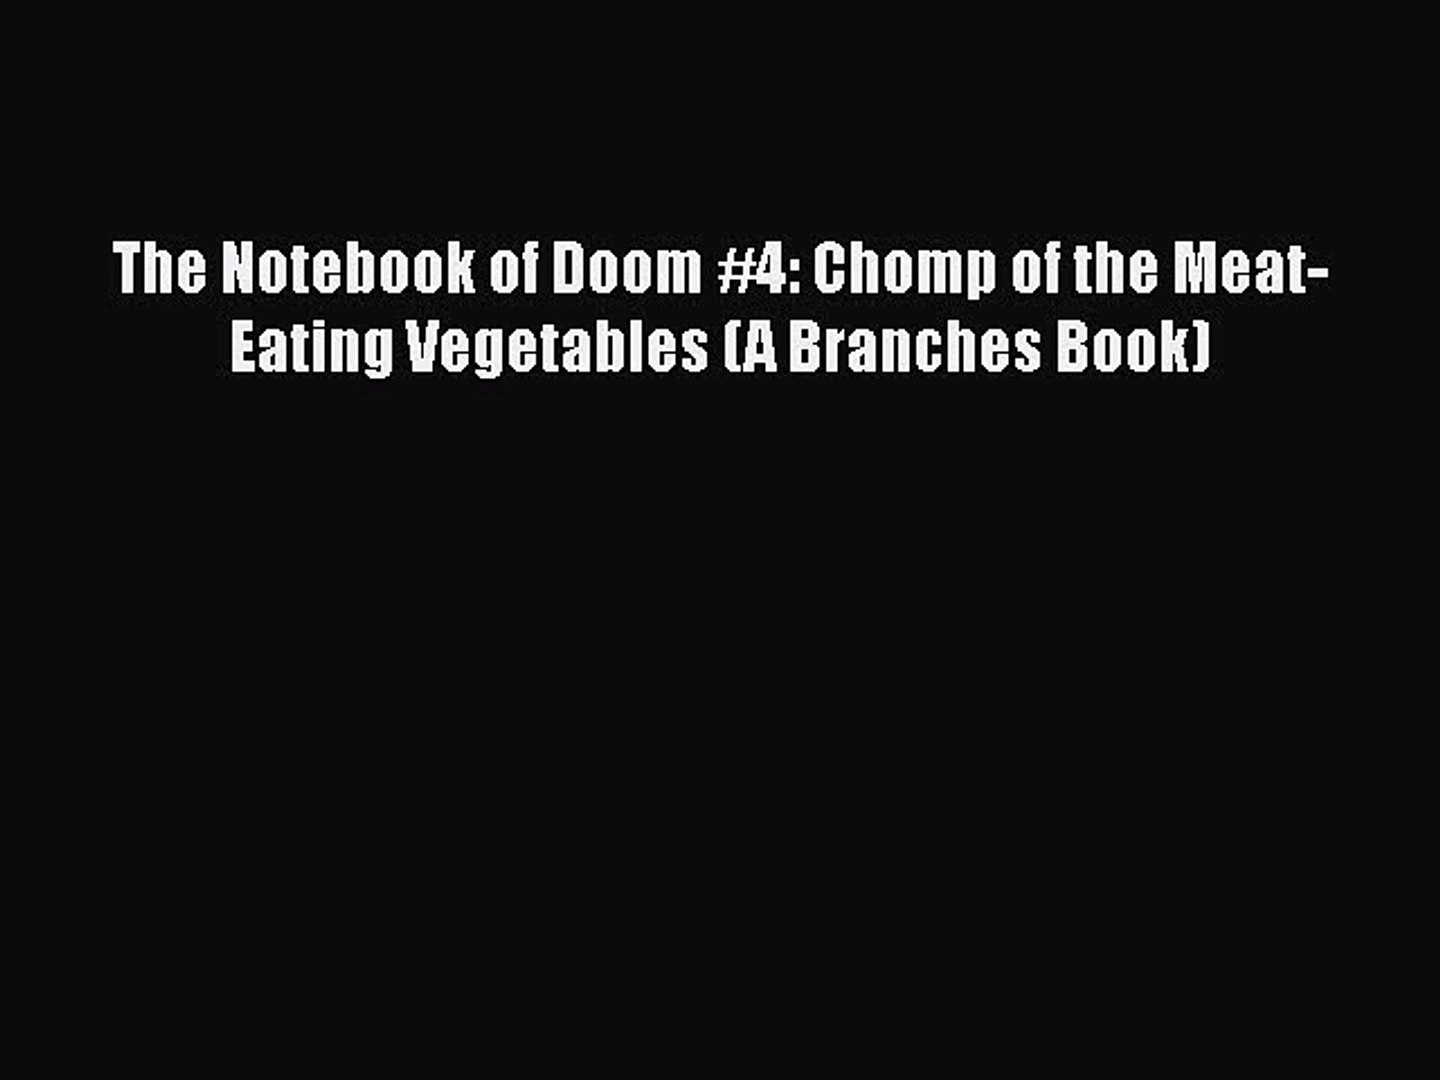 Download The Notebook of Doom #4: Chomp of the Meat-Eating Vegetables (A Branches Book) PDF